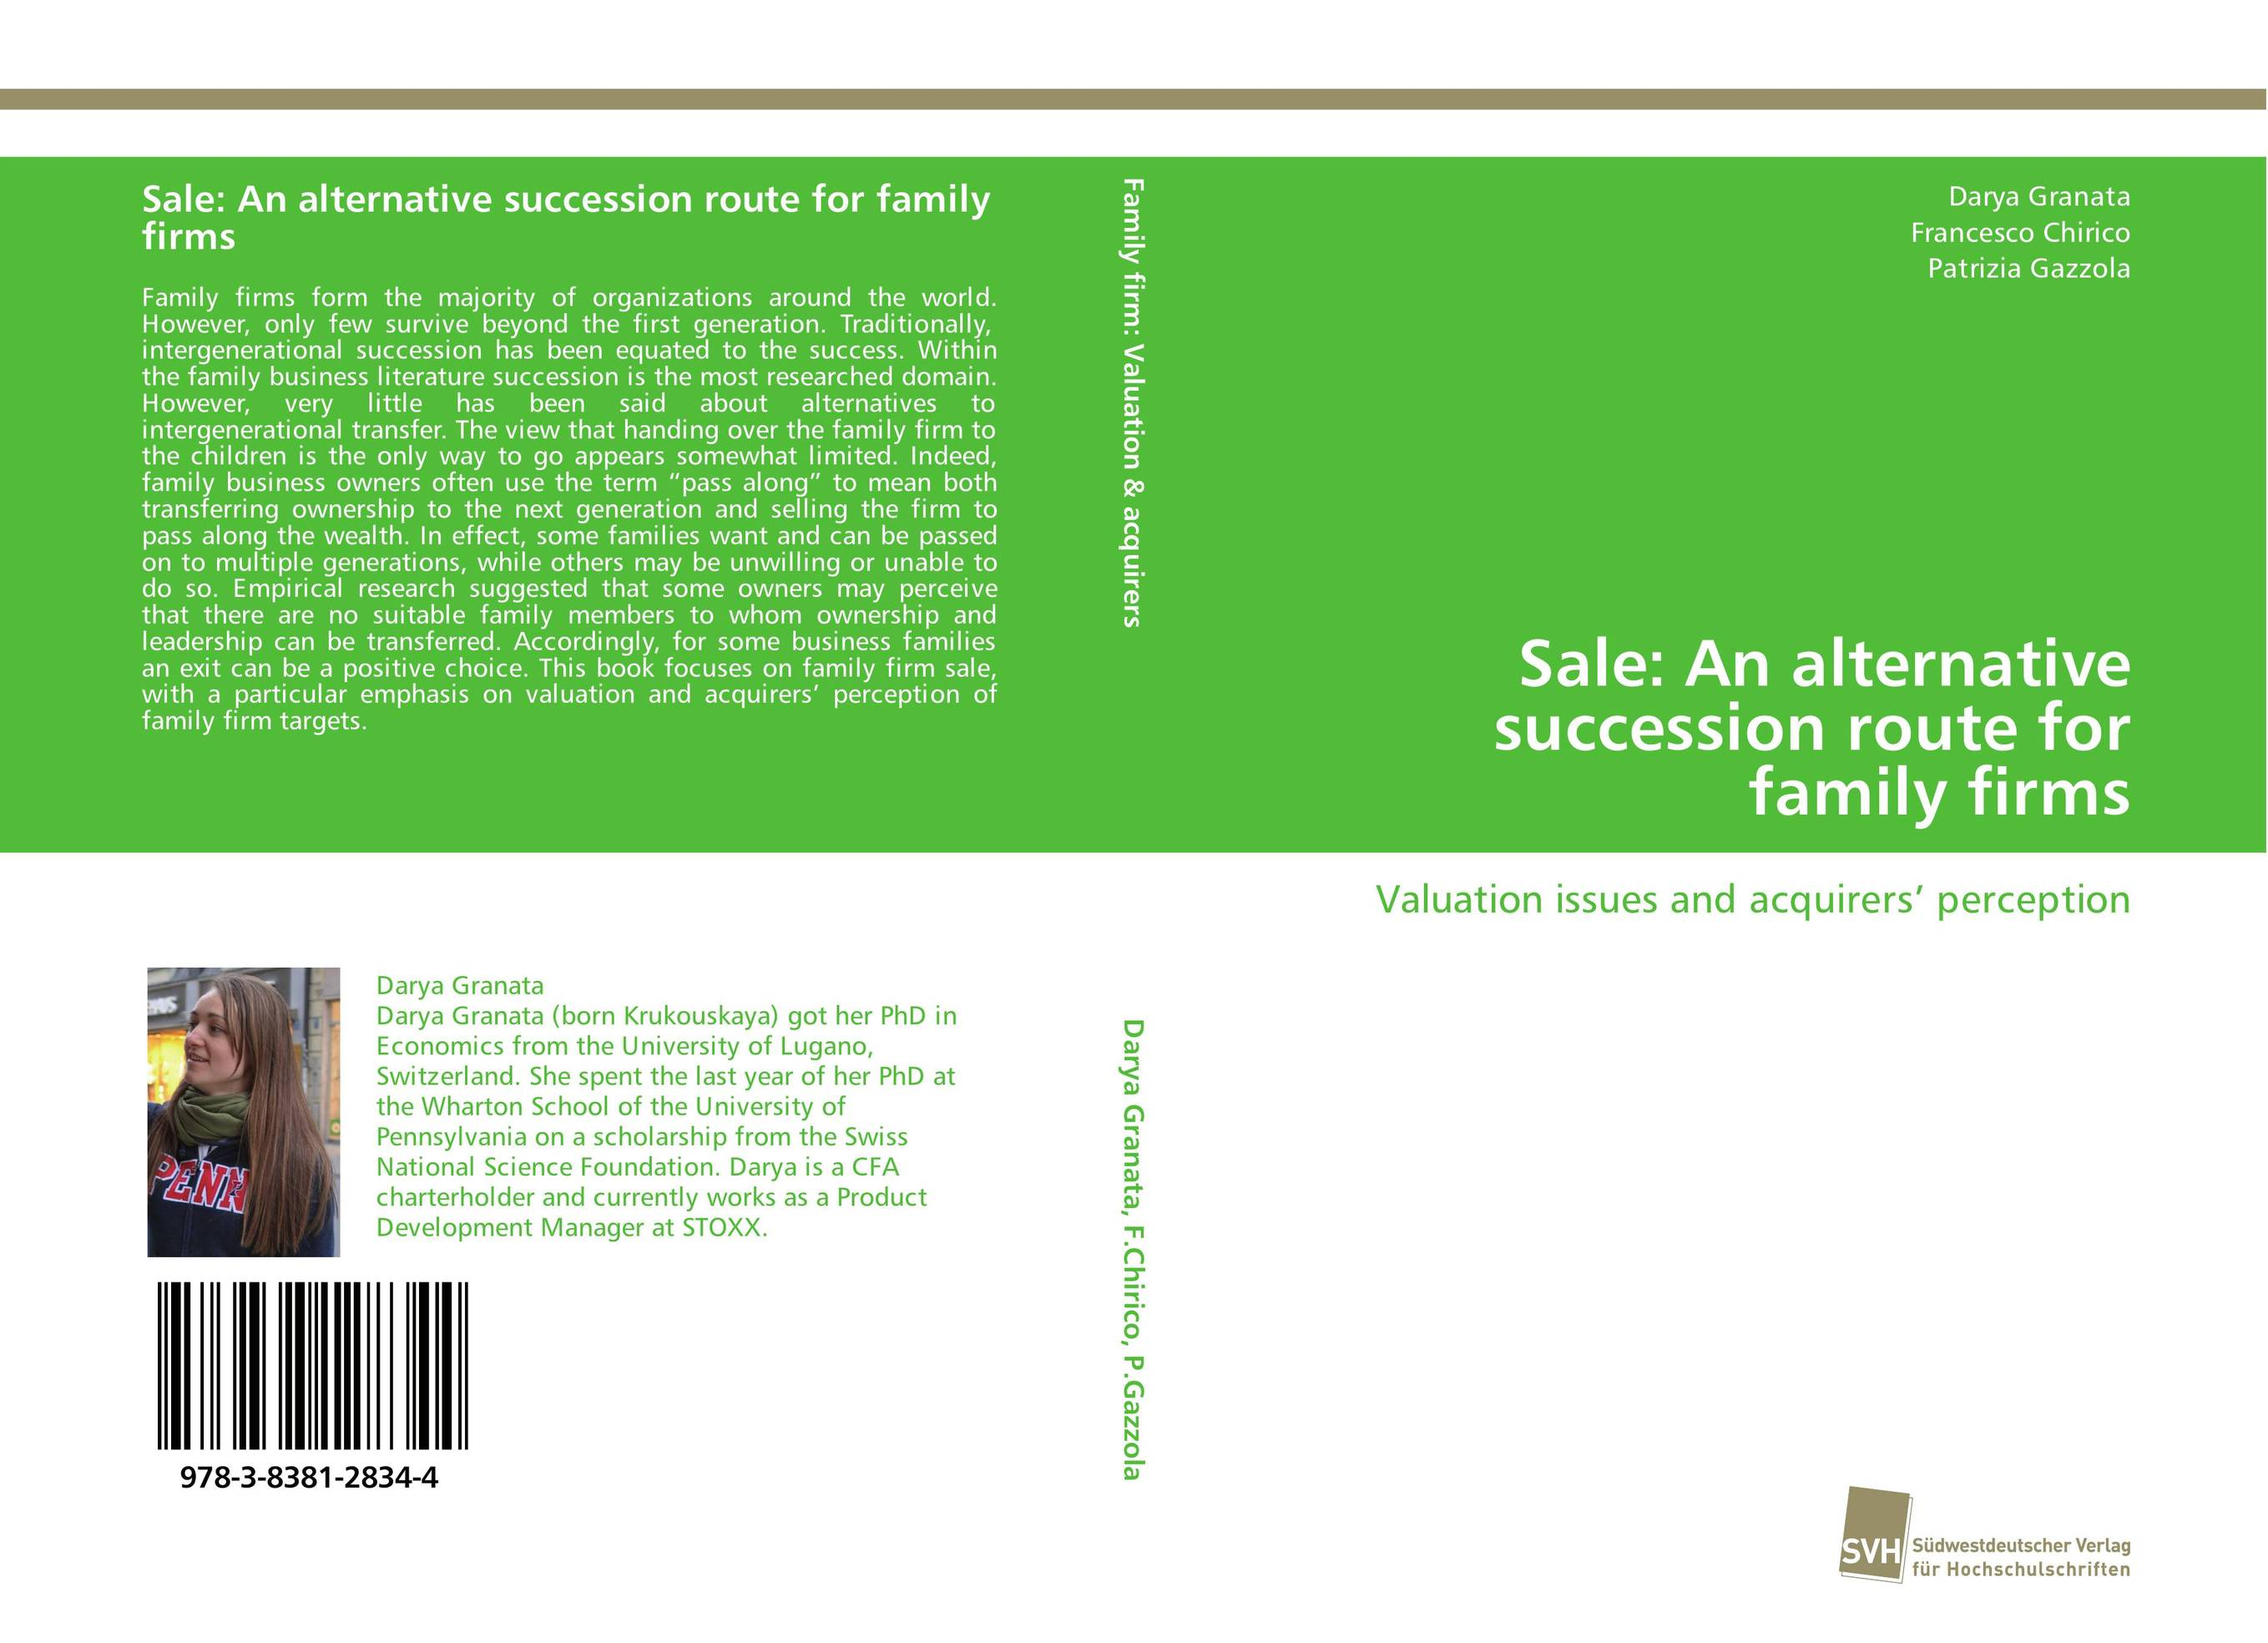 Sale: An alternative succession route for family firms david sr grau succession planning for financial advisors building an enduring business